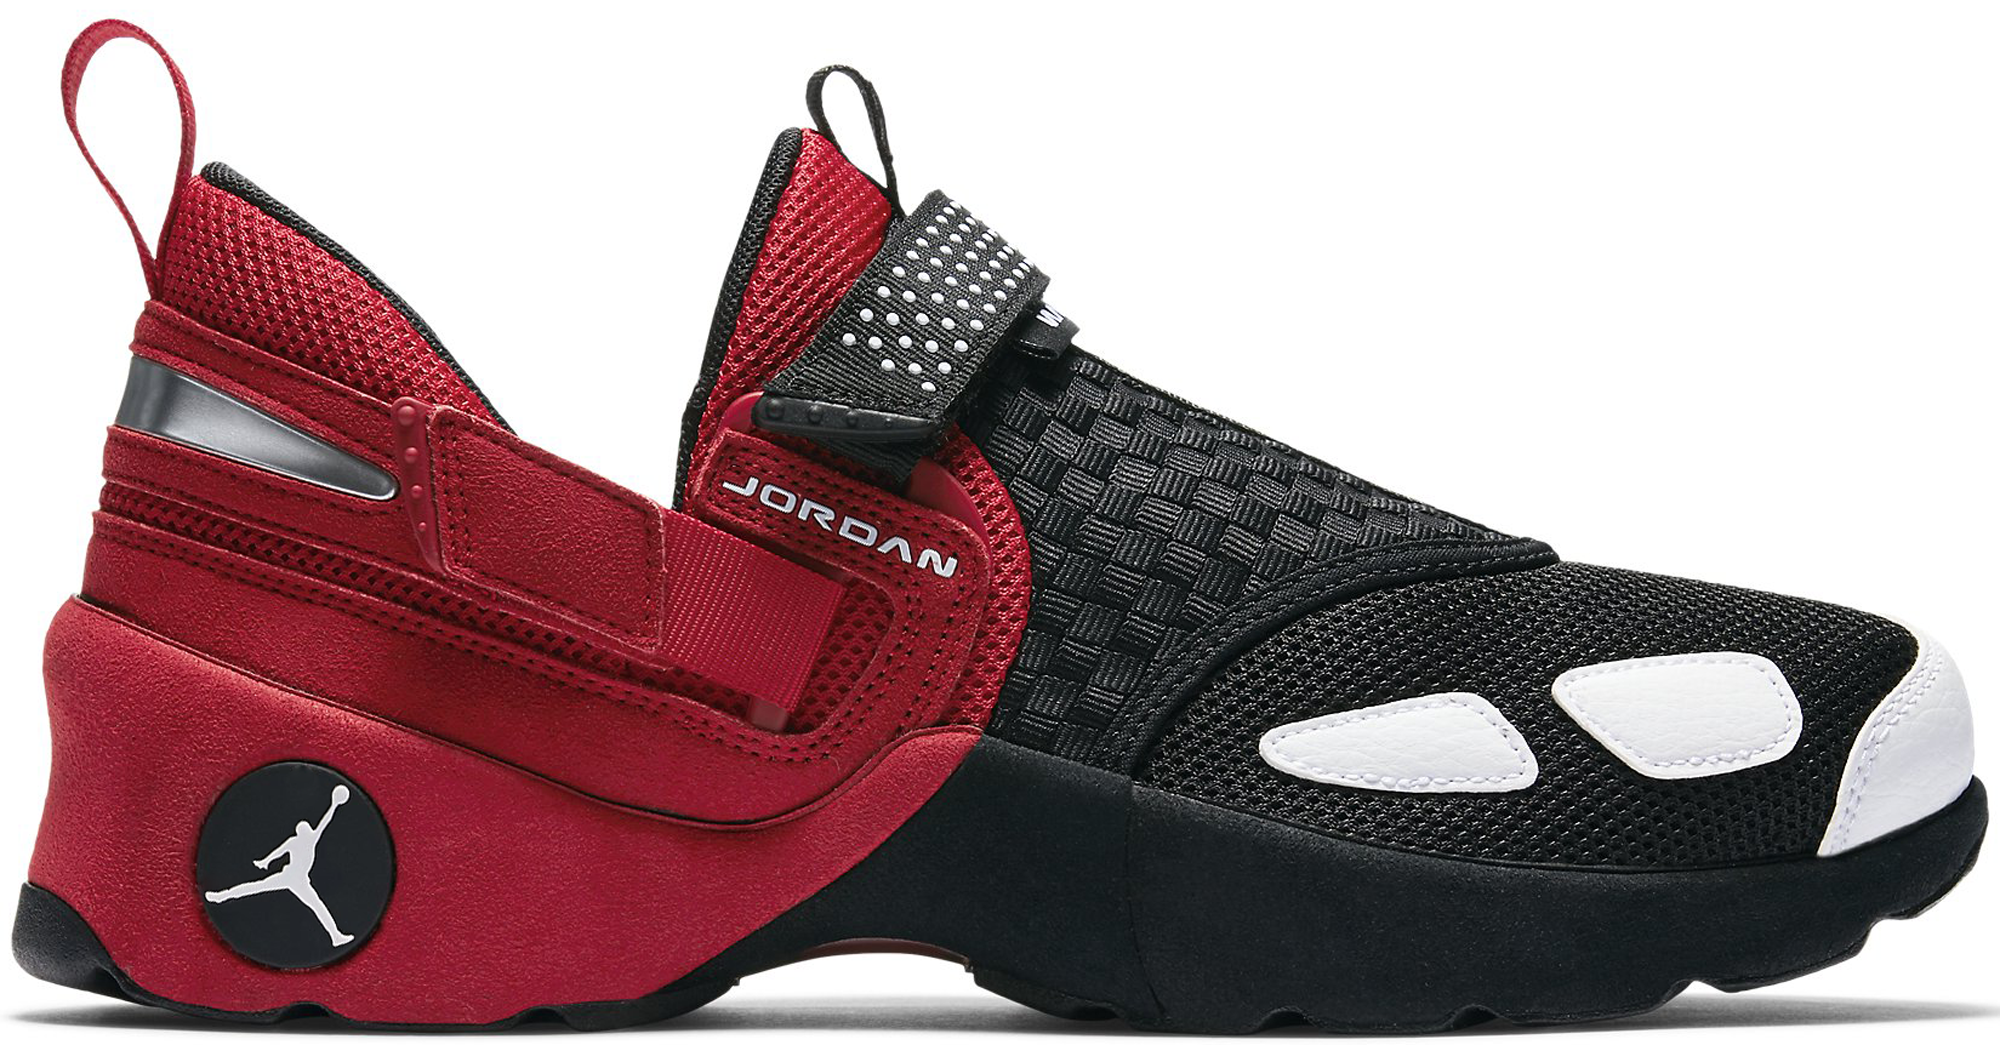 fdf0249aac3 Jordan Trunner LX OG Black White Gym Red - StockX News